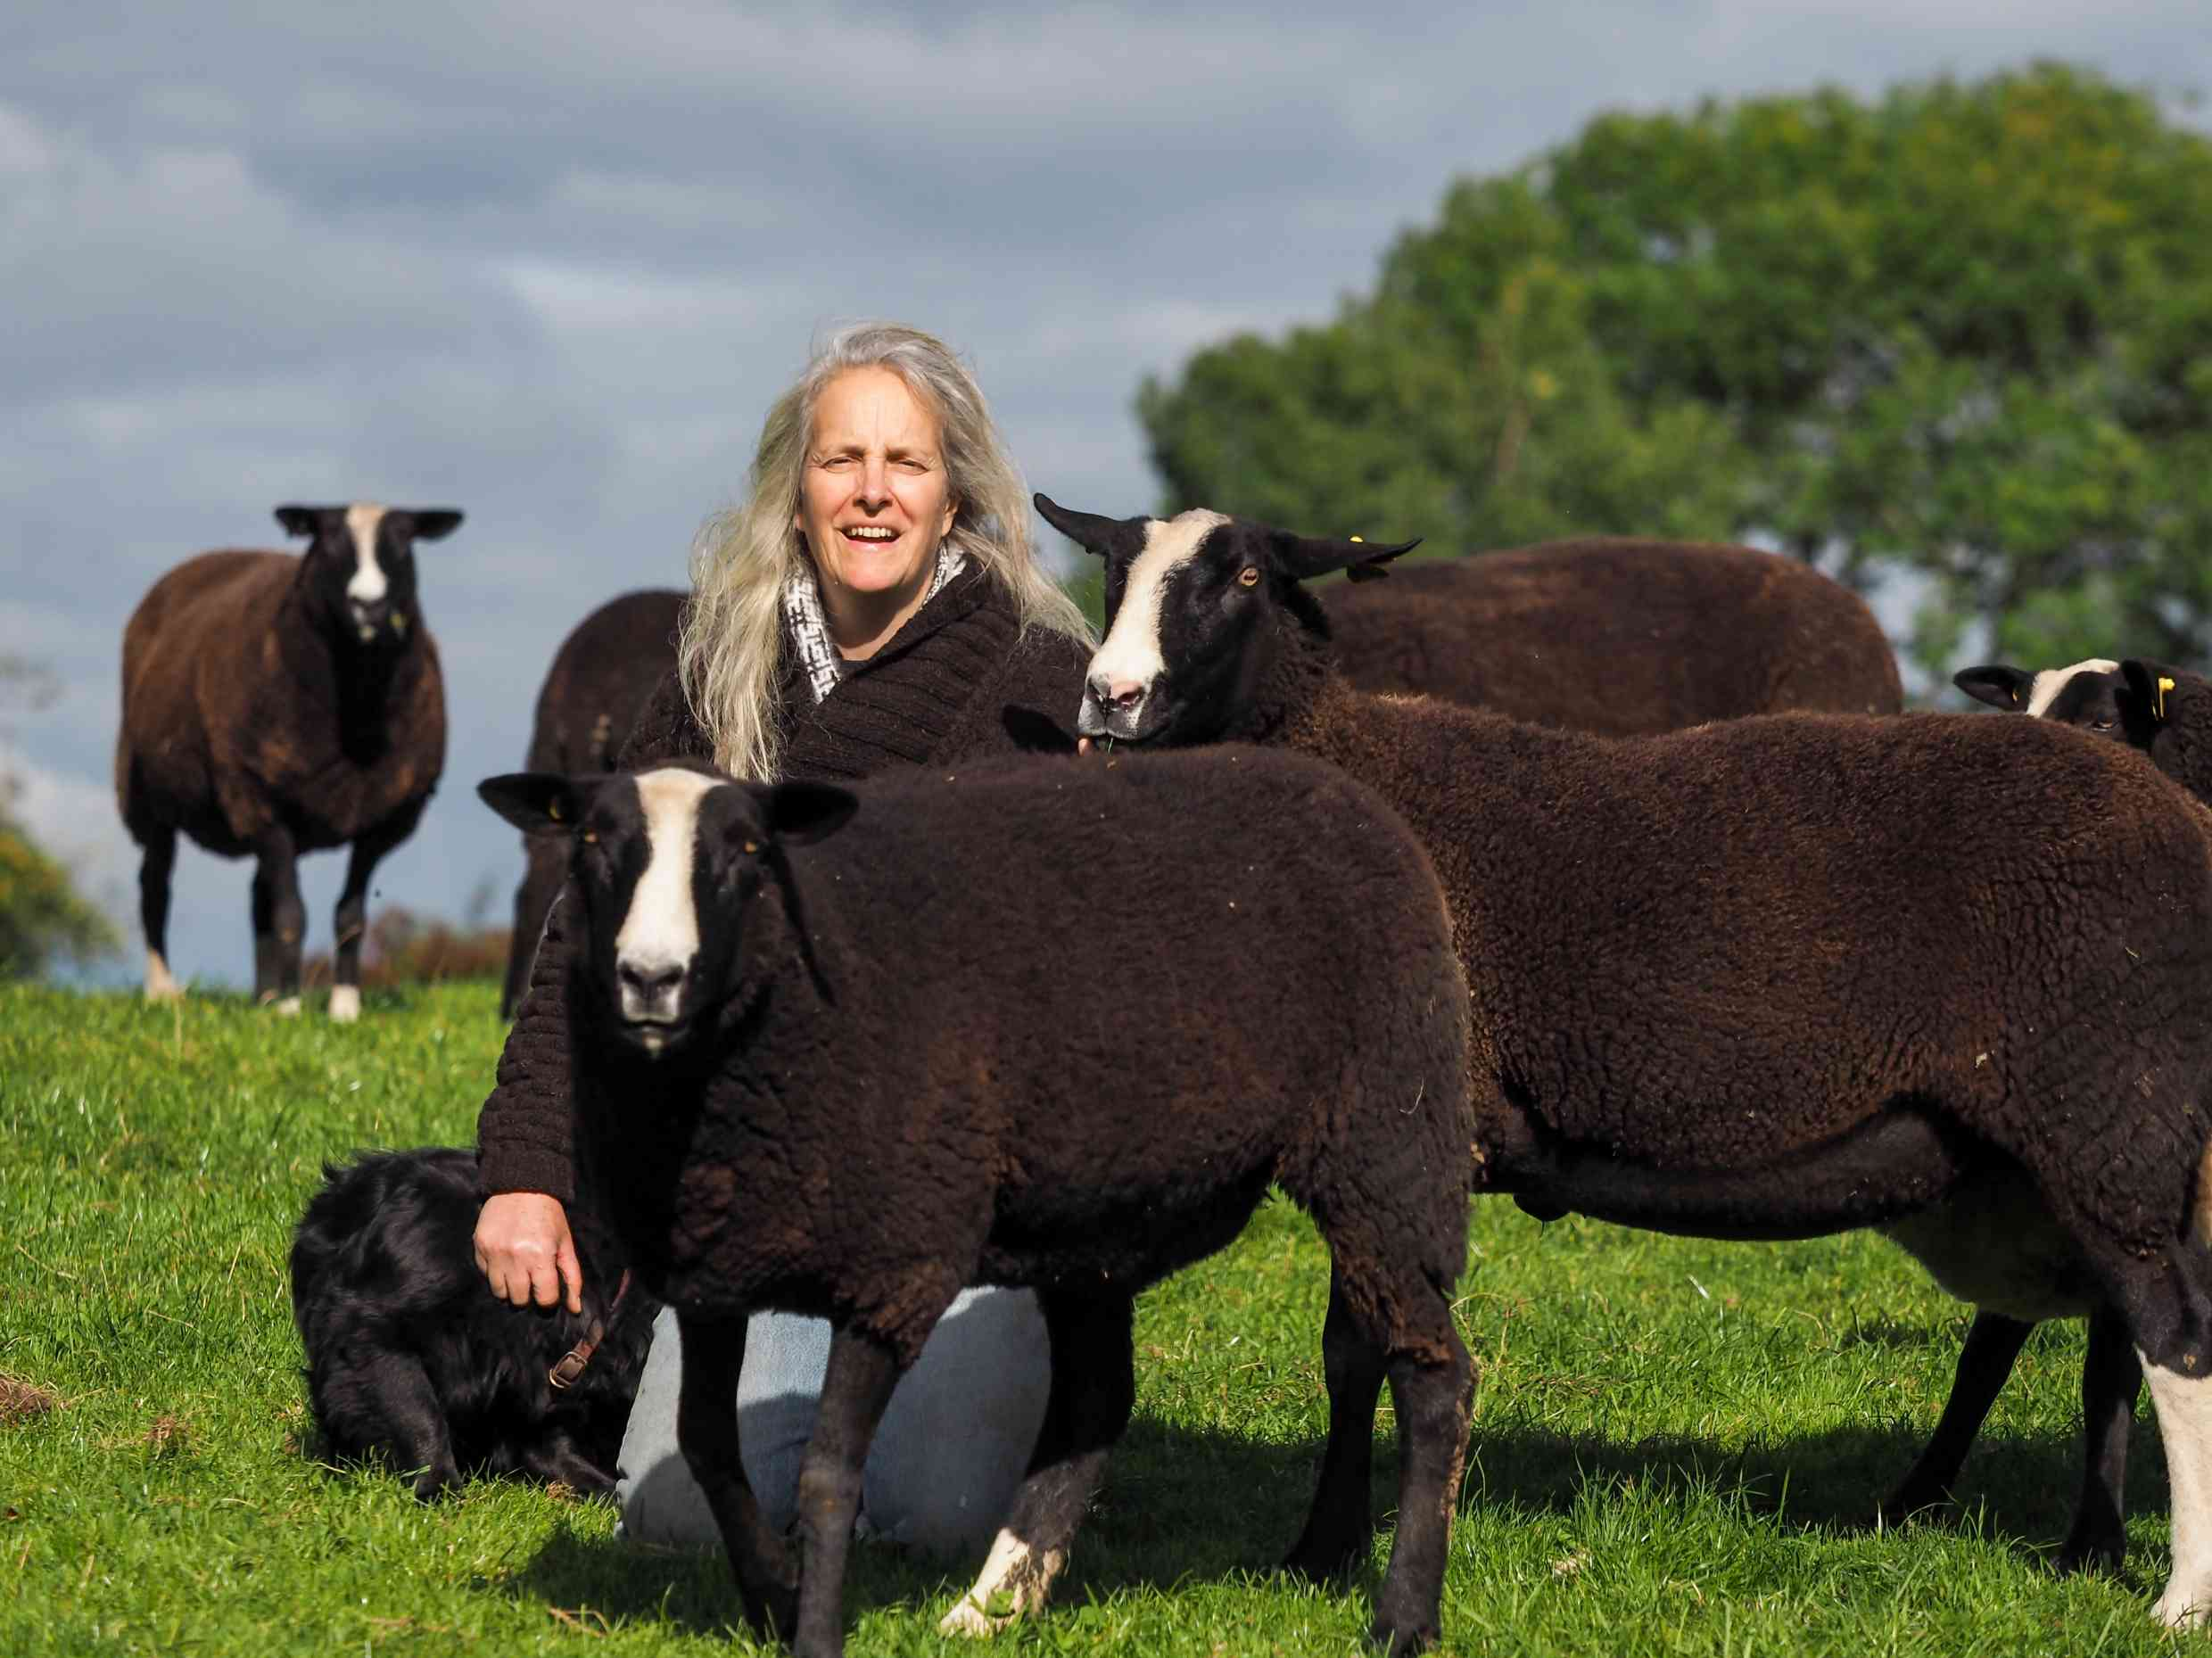 Women Of The Irish Food Industry – Suzanna Crampton, Farmer and Educator